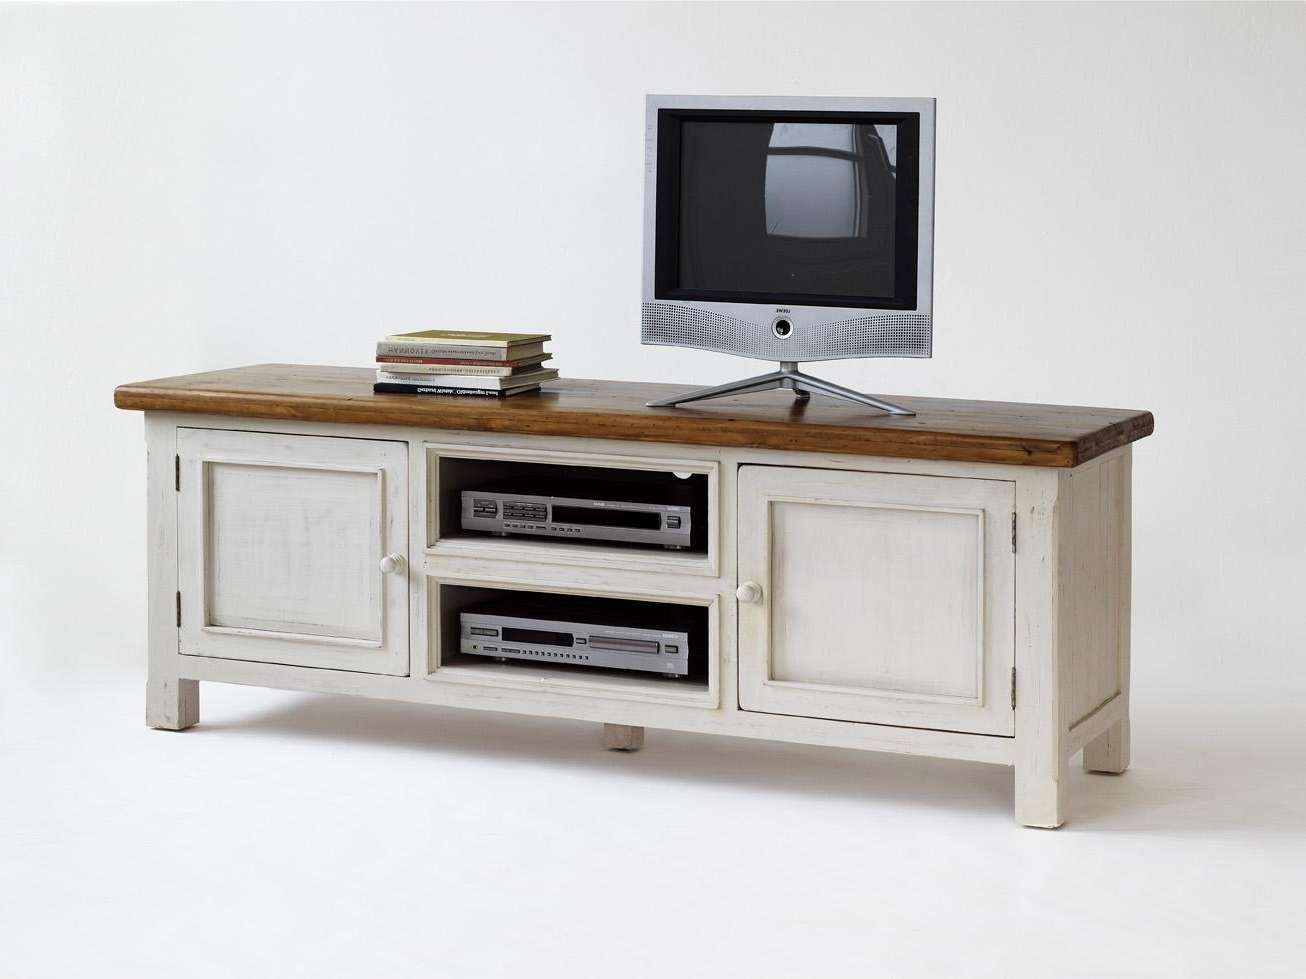 Incredible Decoration White Wood Furniture Nice Design Ideas Within White Wood Tv Stands (View 4 of 15)